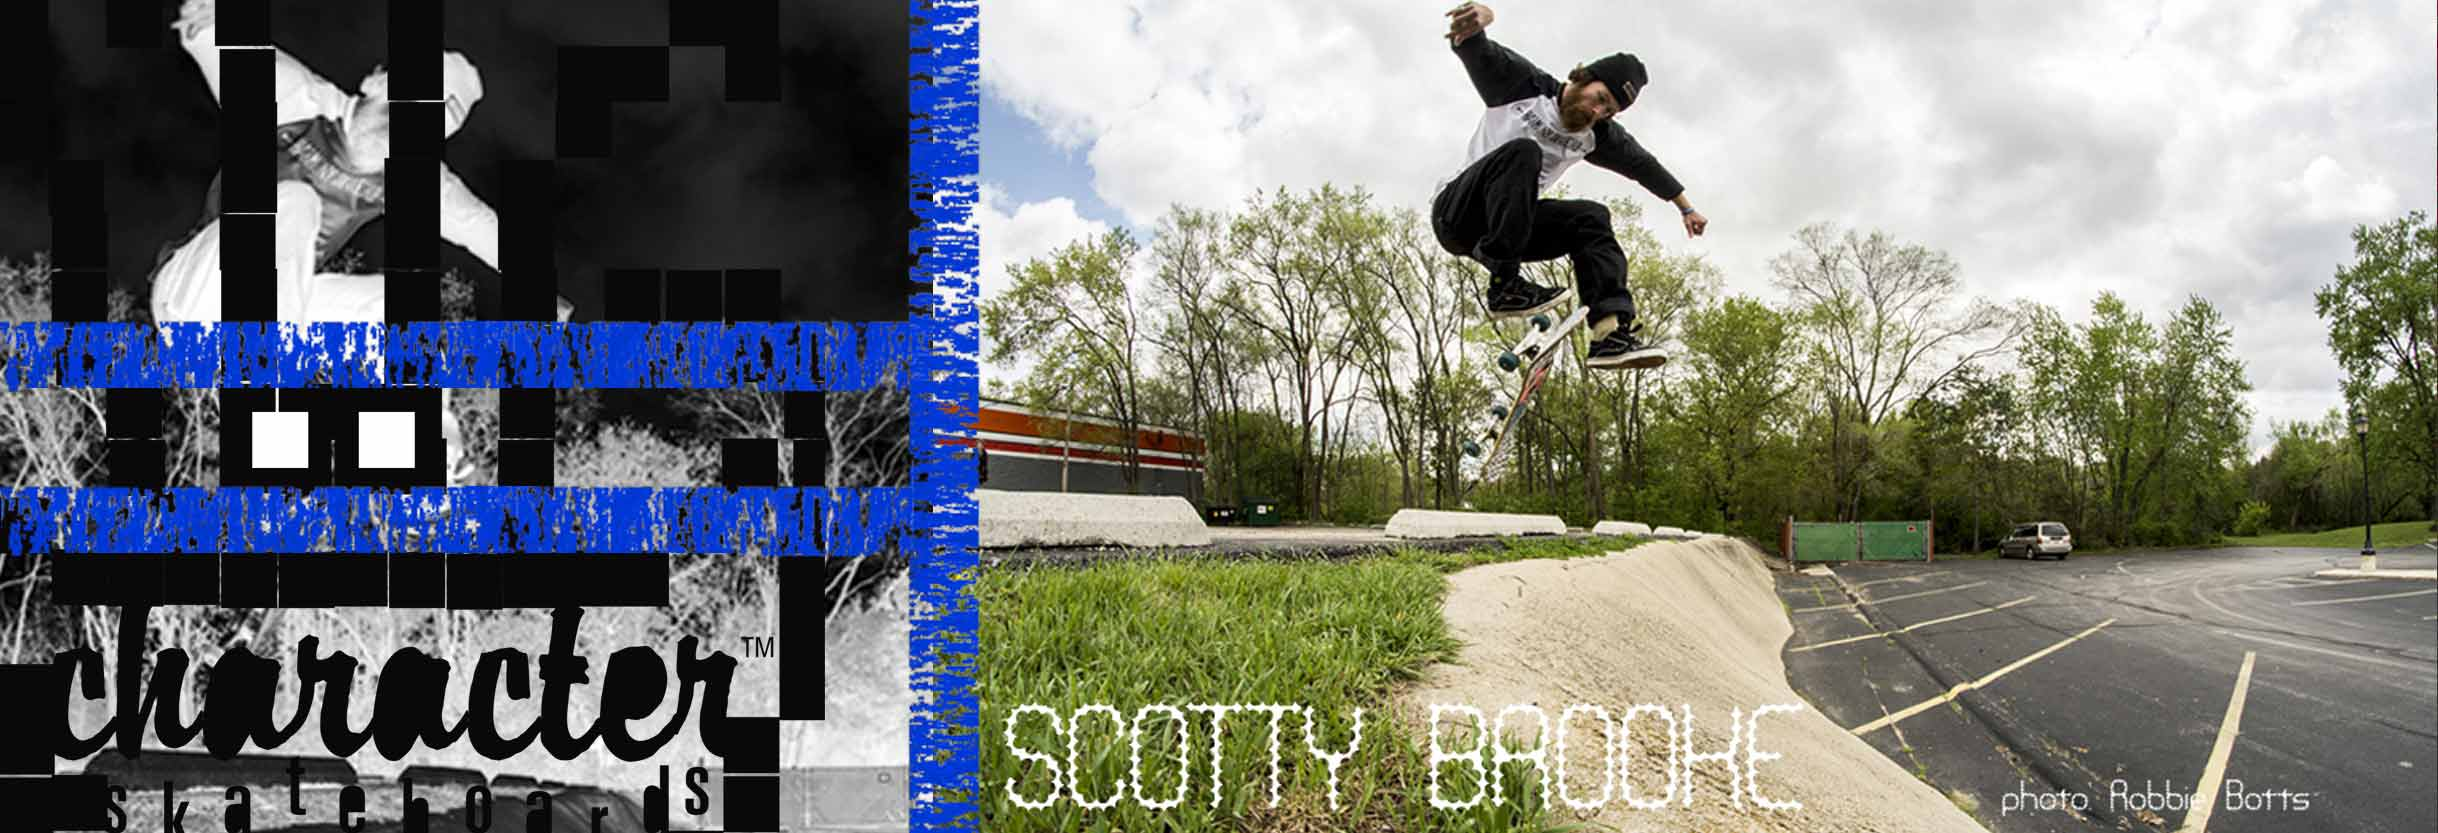 Scotty Brooke - Chicago Skateboarding by Character Skateboards